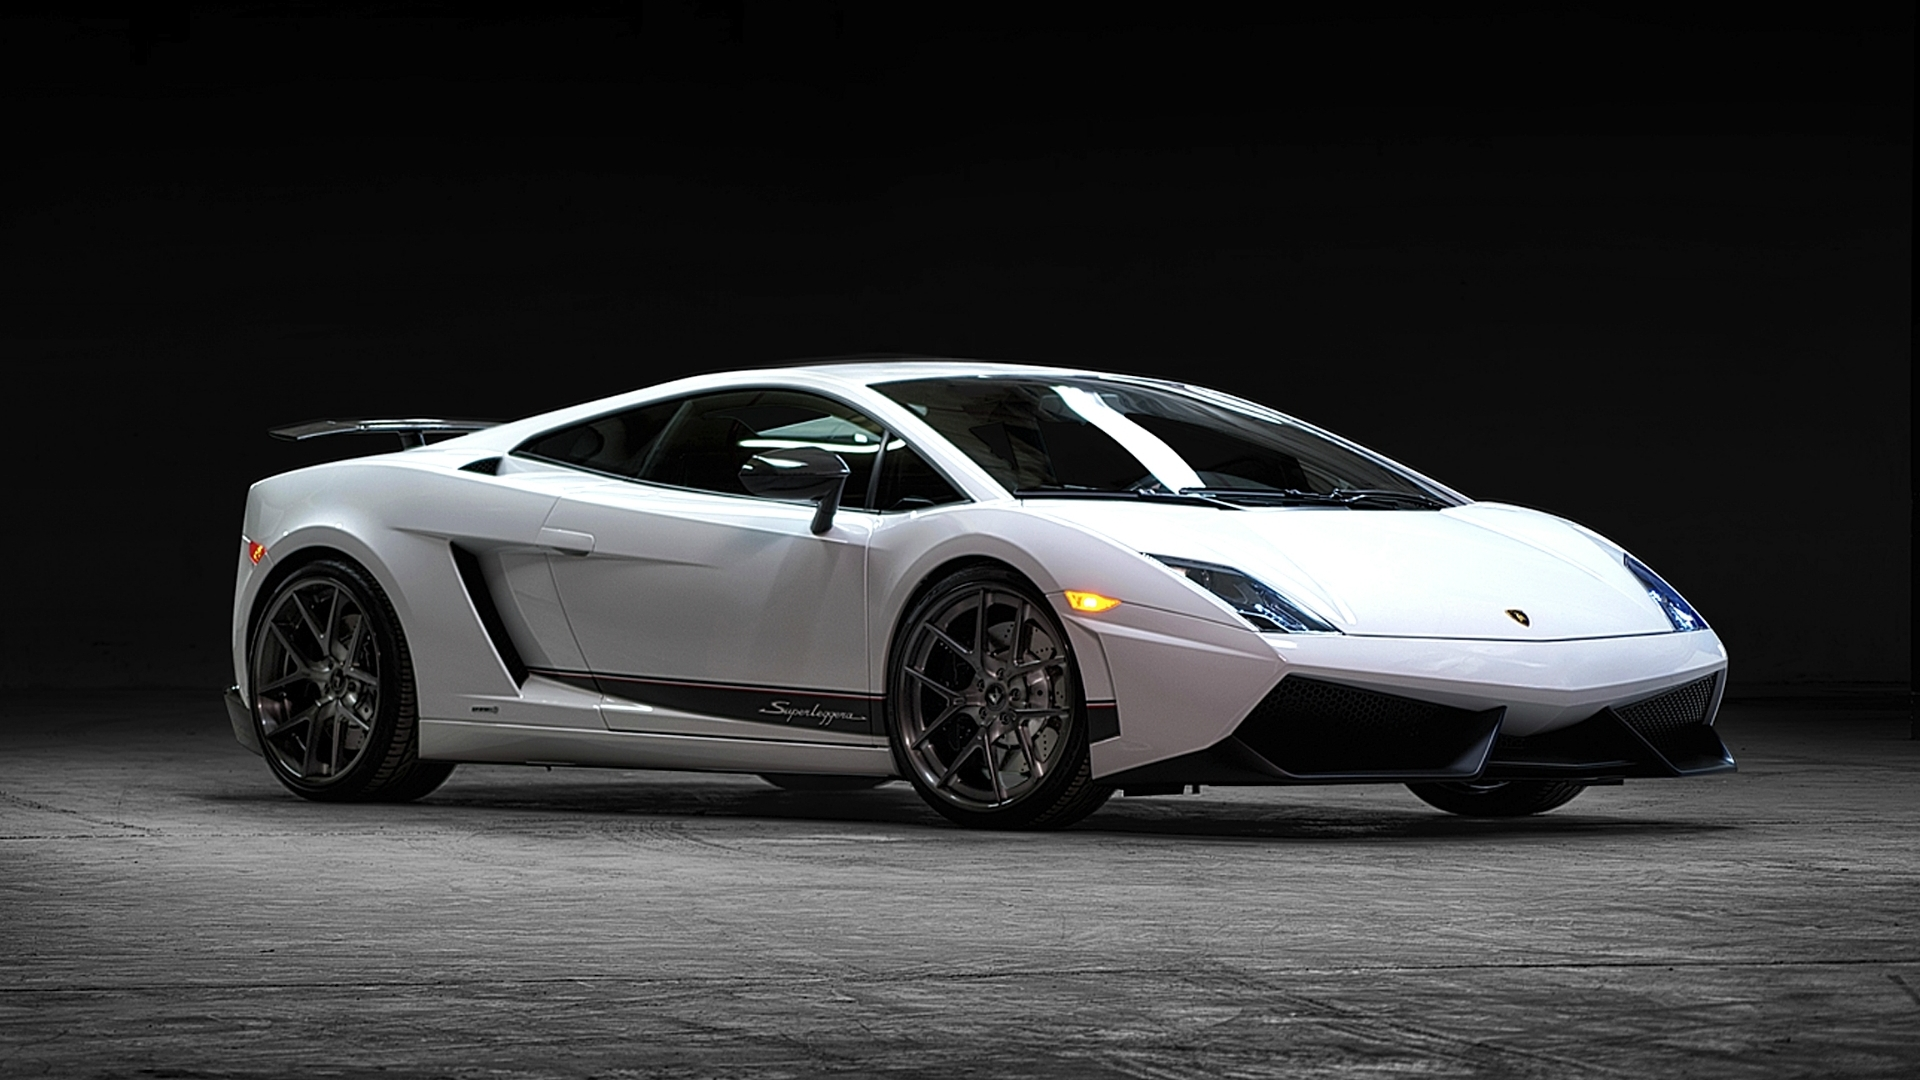 lamborghini gallardo wallpapers hd wallpaper with 1920x1080 resolution